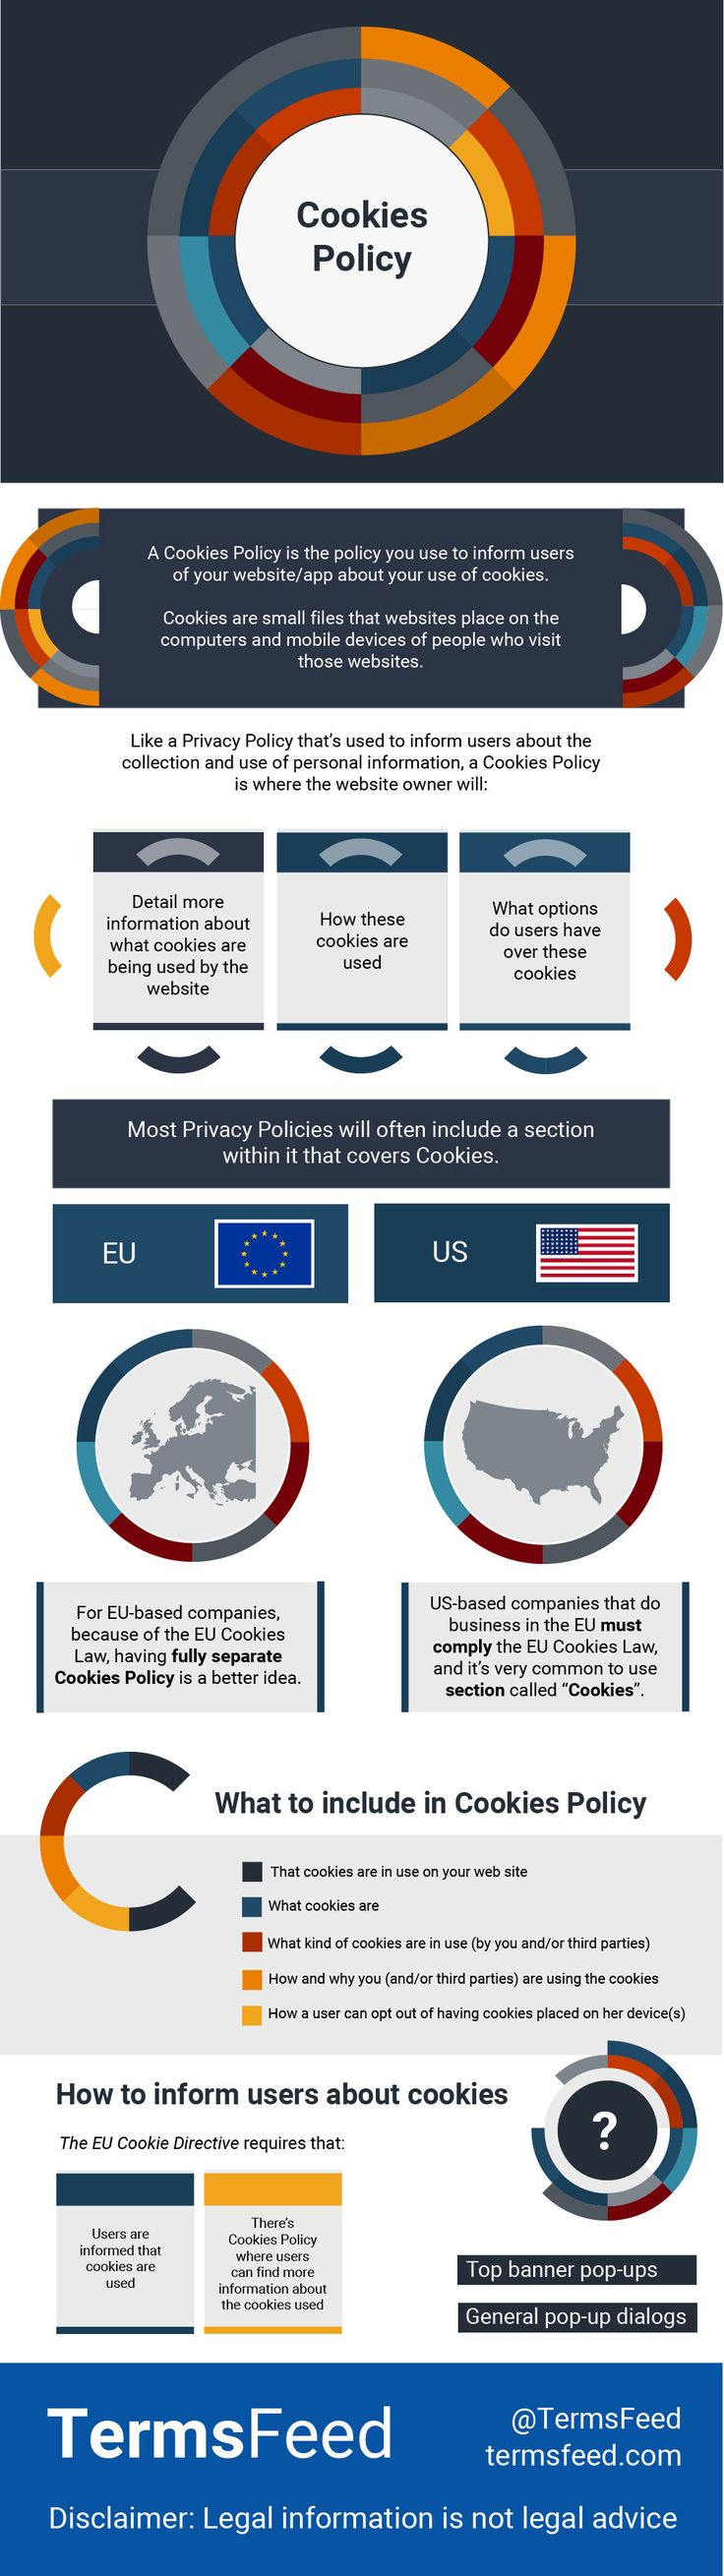 A Cookies Policy is the policy used to inform users about the use of cookies by a website or an app.